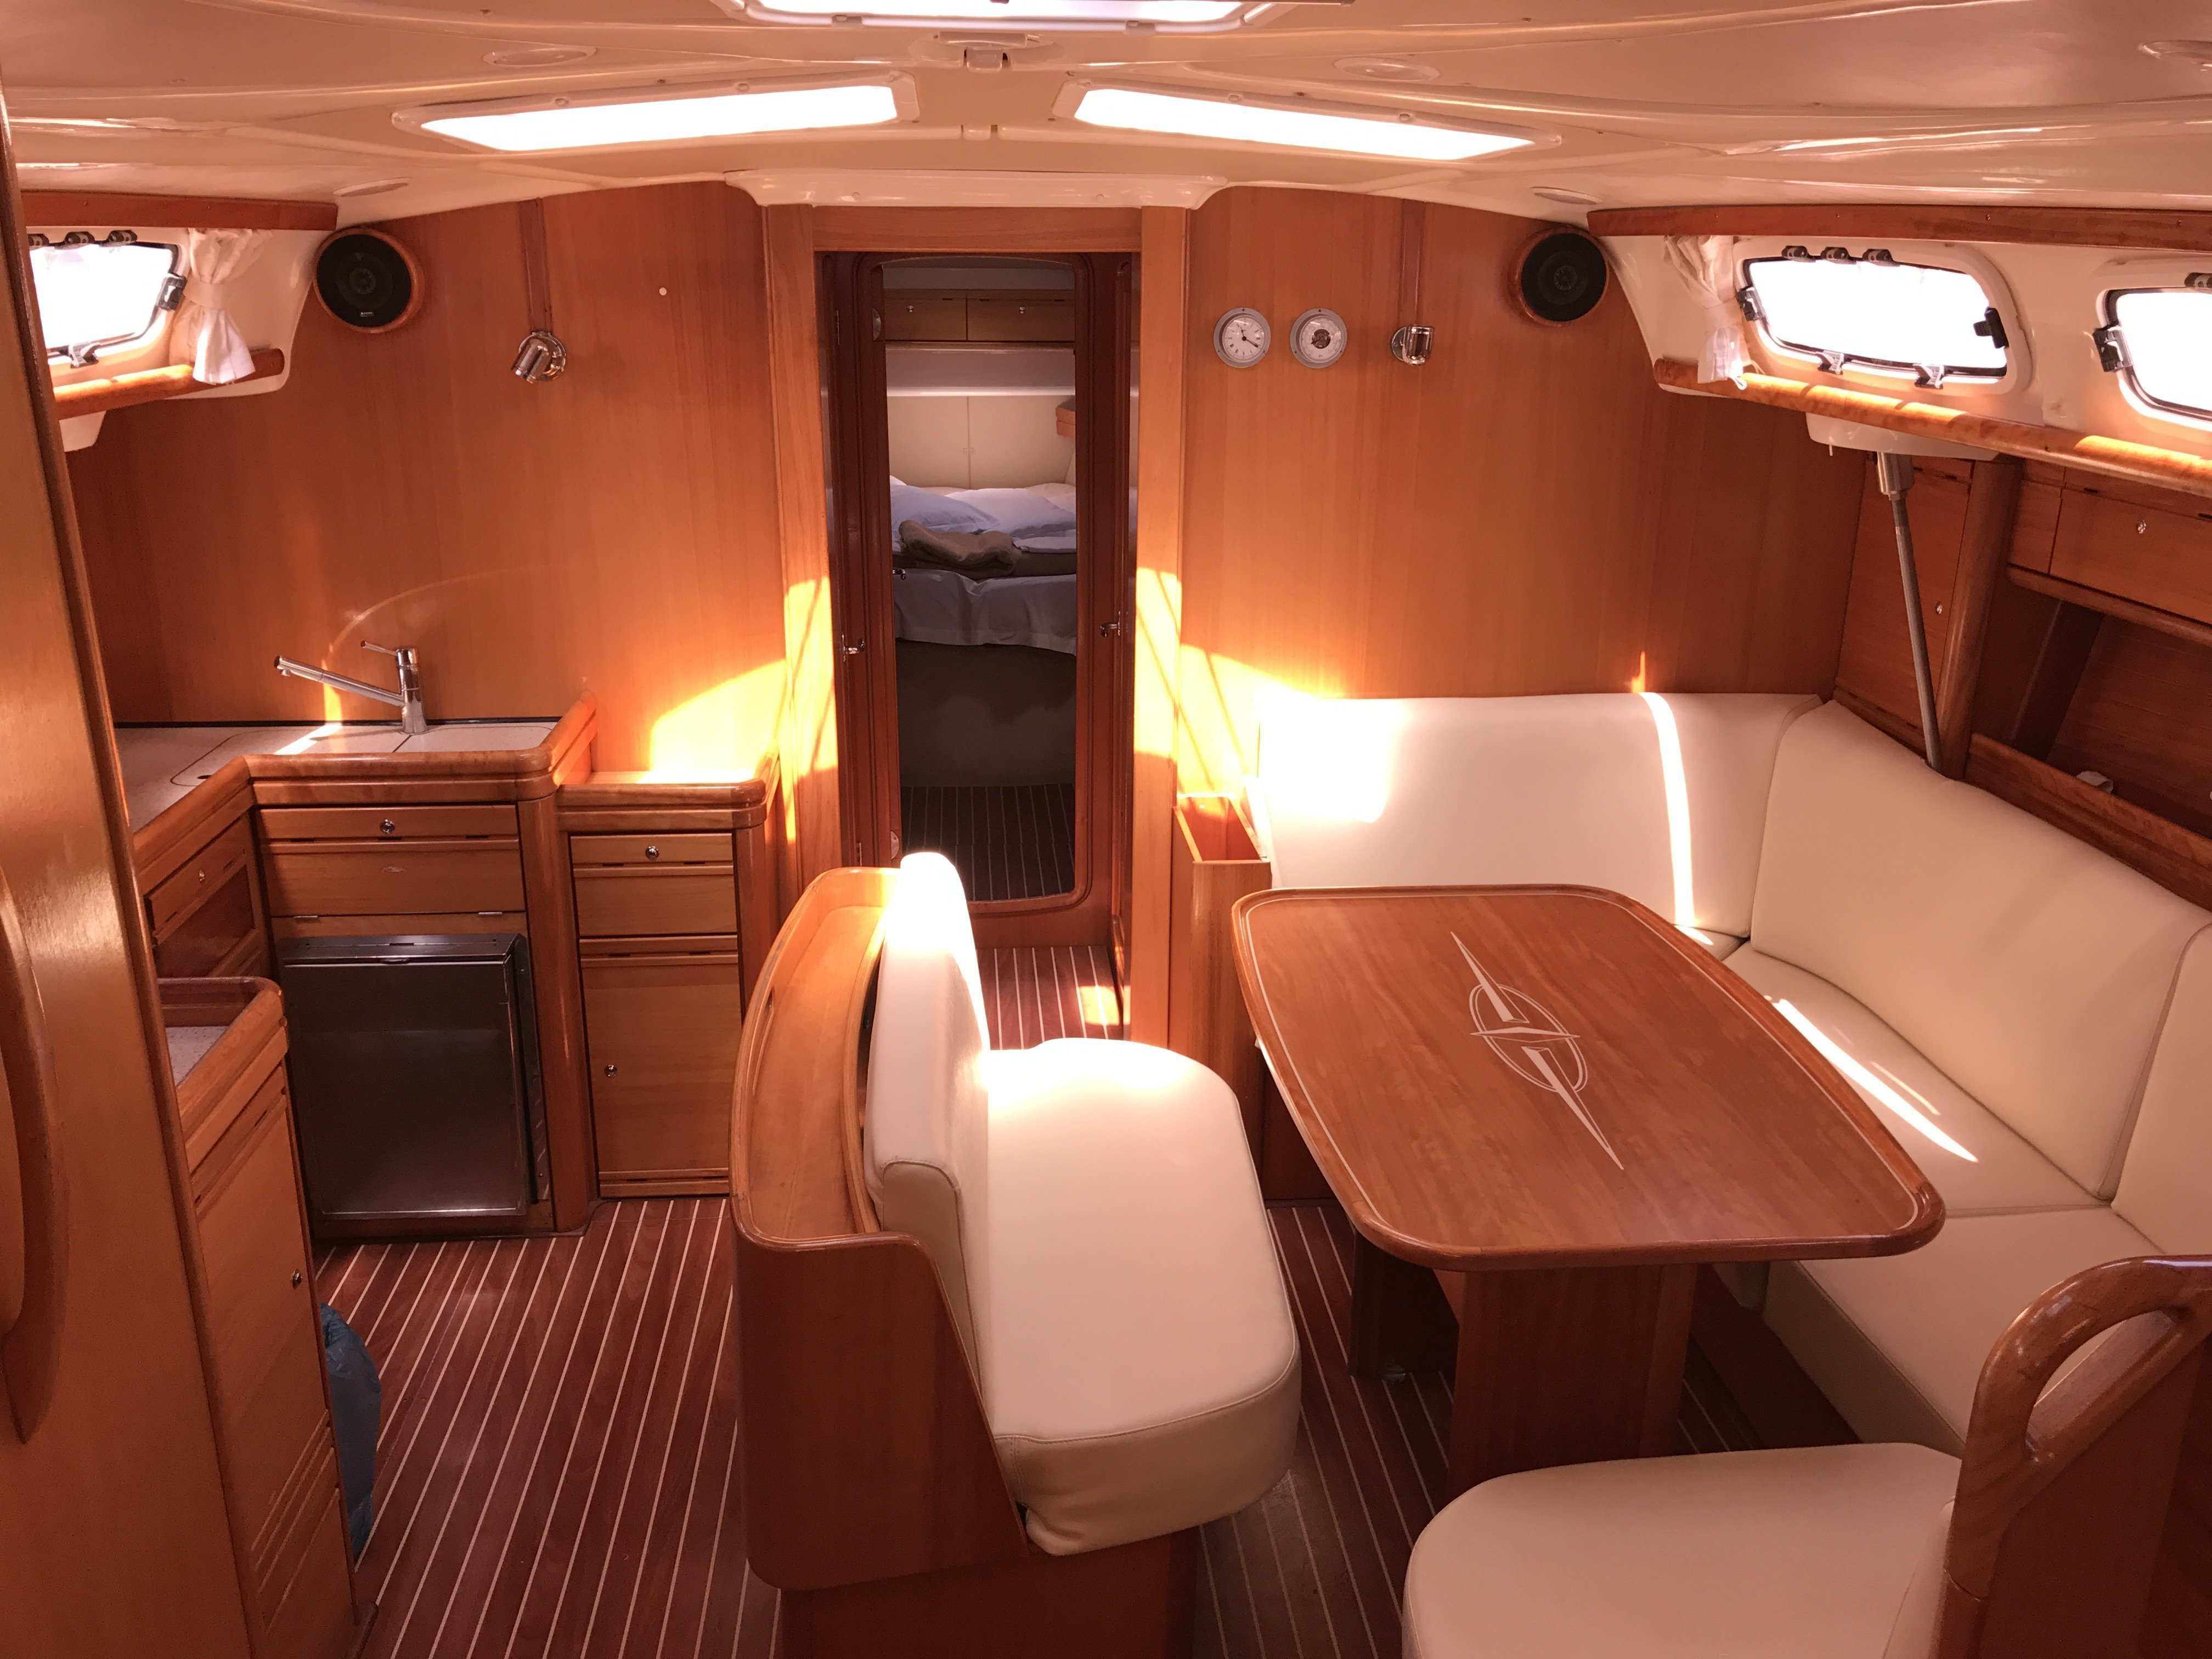 Bavaria 46 Cr (Merope) Interior image - 17